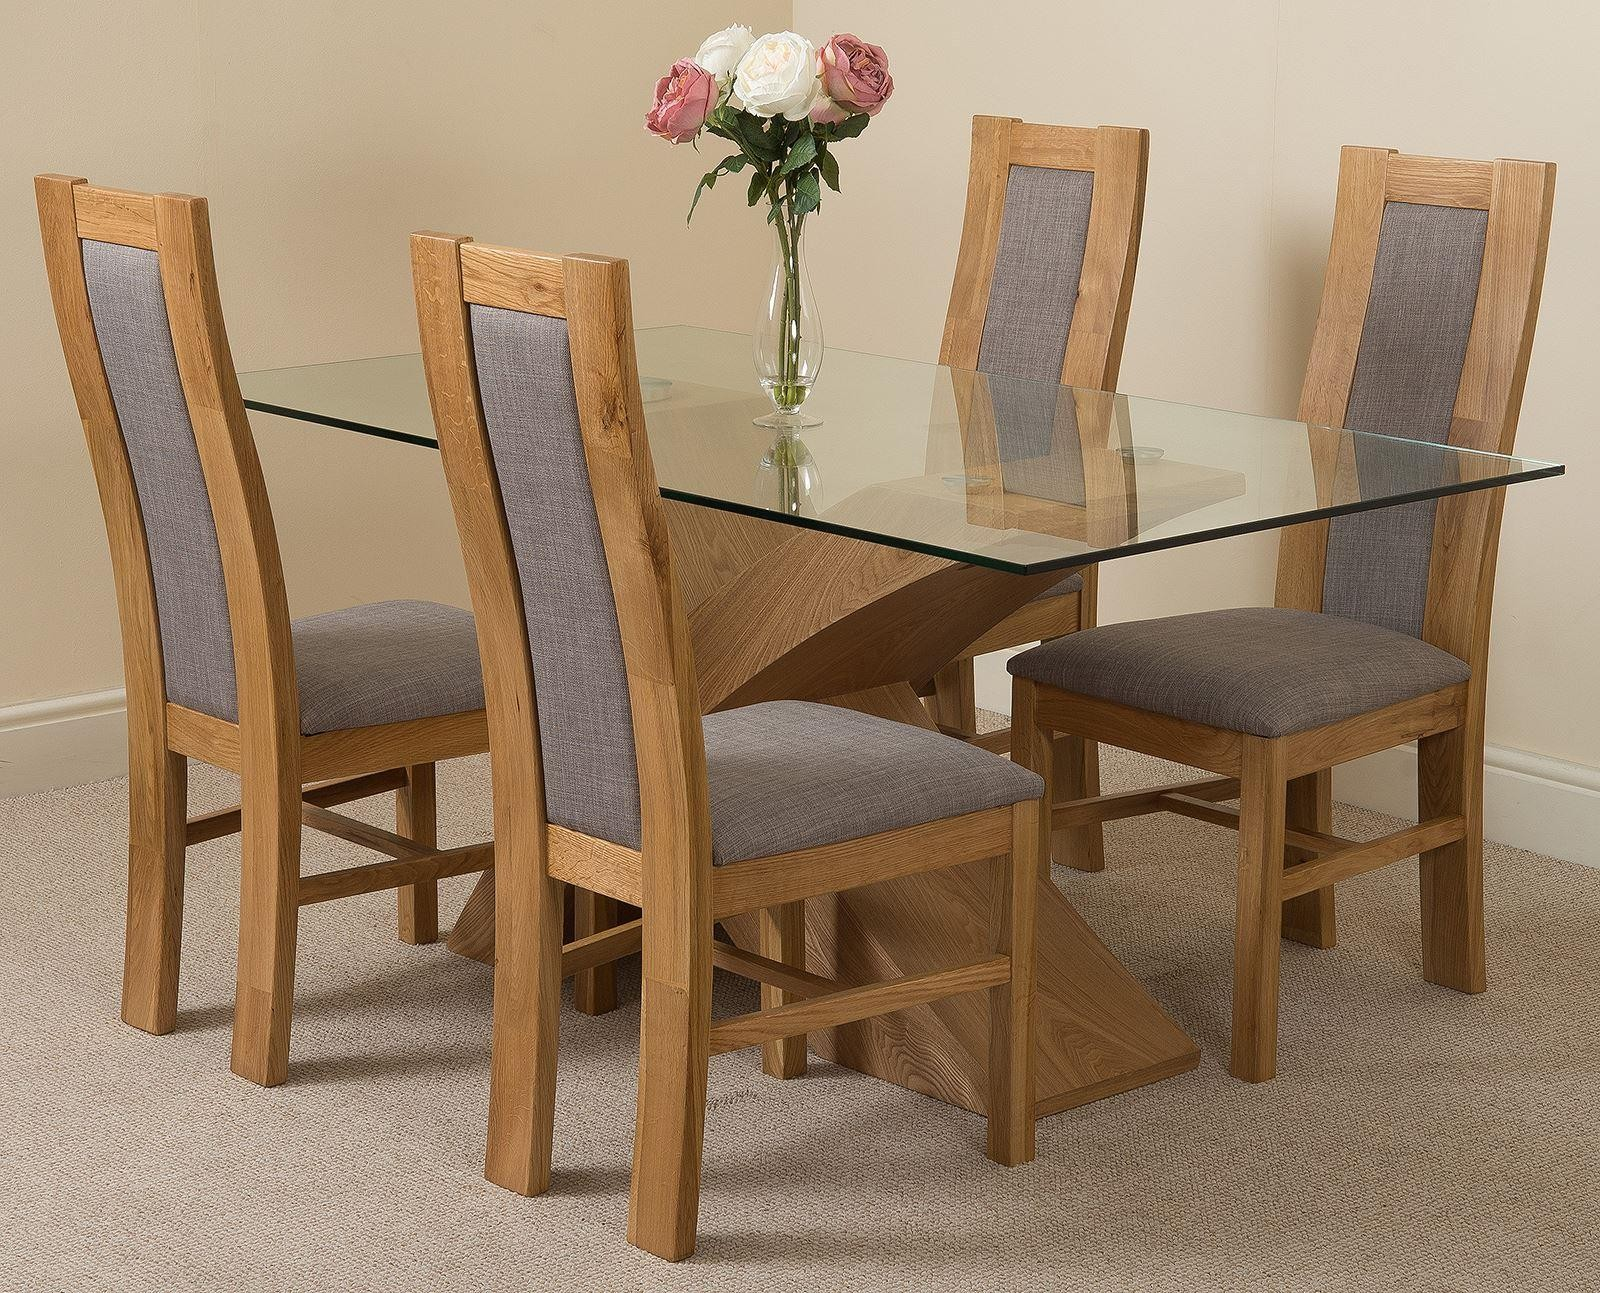 oak dining room sets. Valencia Oak 160cm Wood And Glass Dining Table With 4 Stanford Solid Chairs [Light Brown Leather] - Chair Room Sets